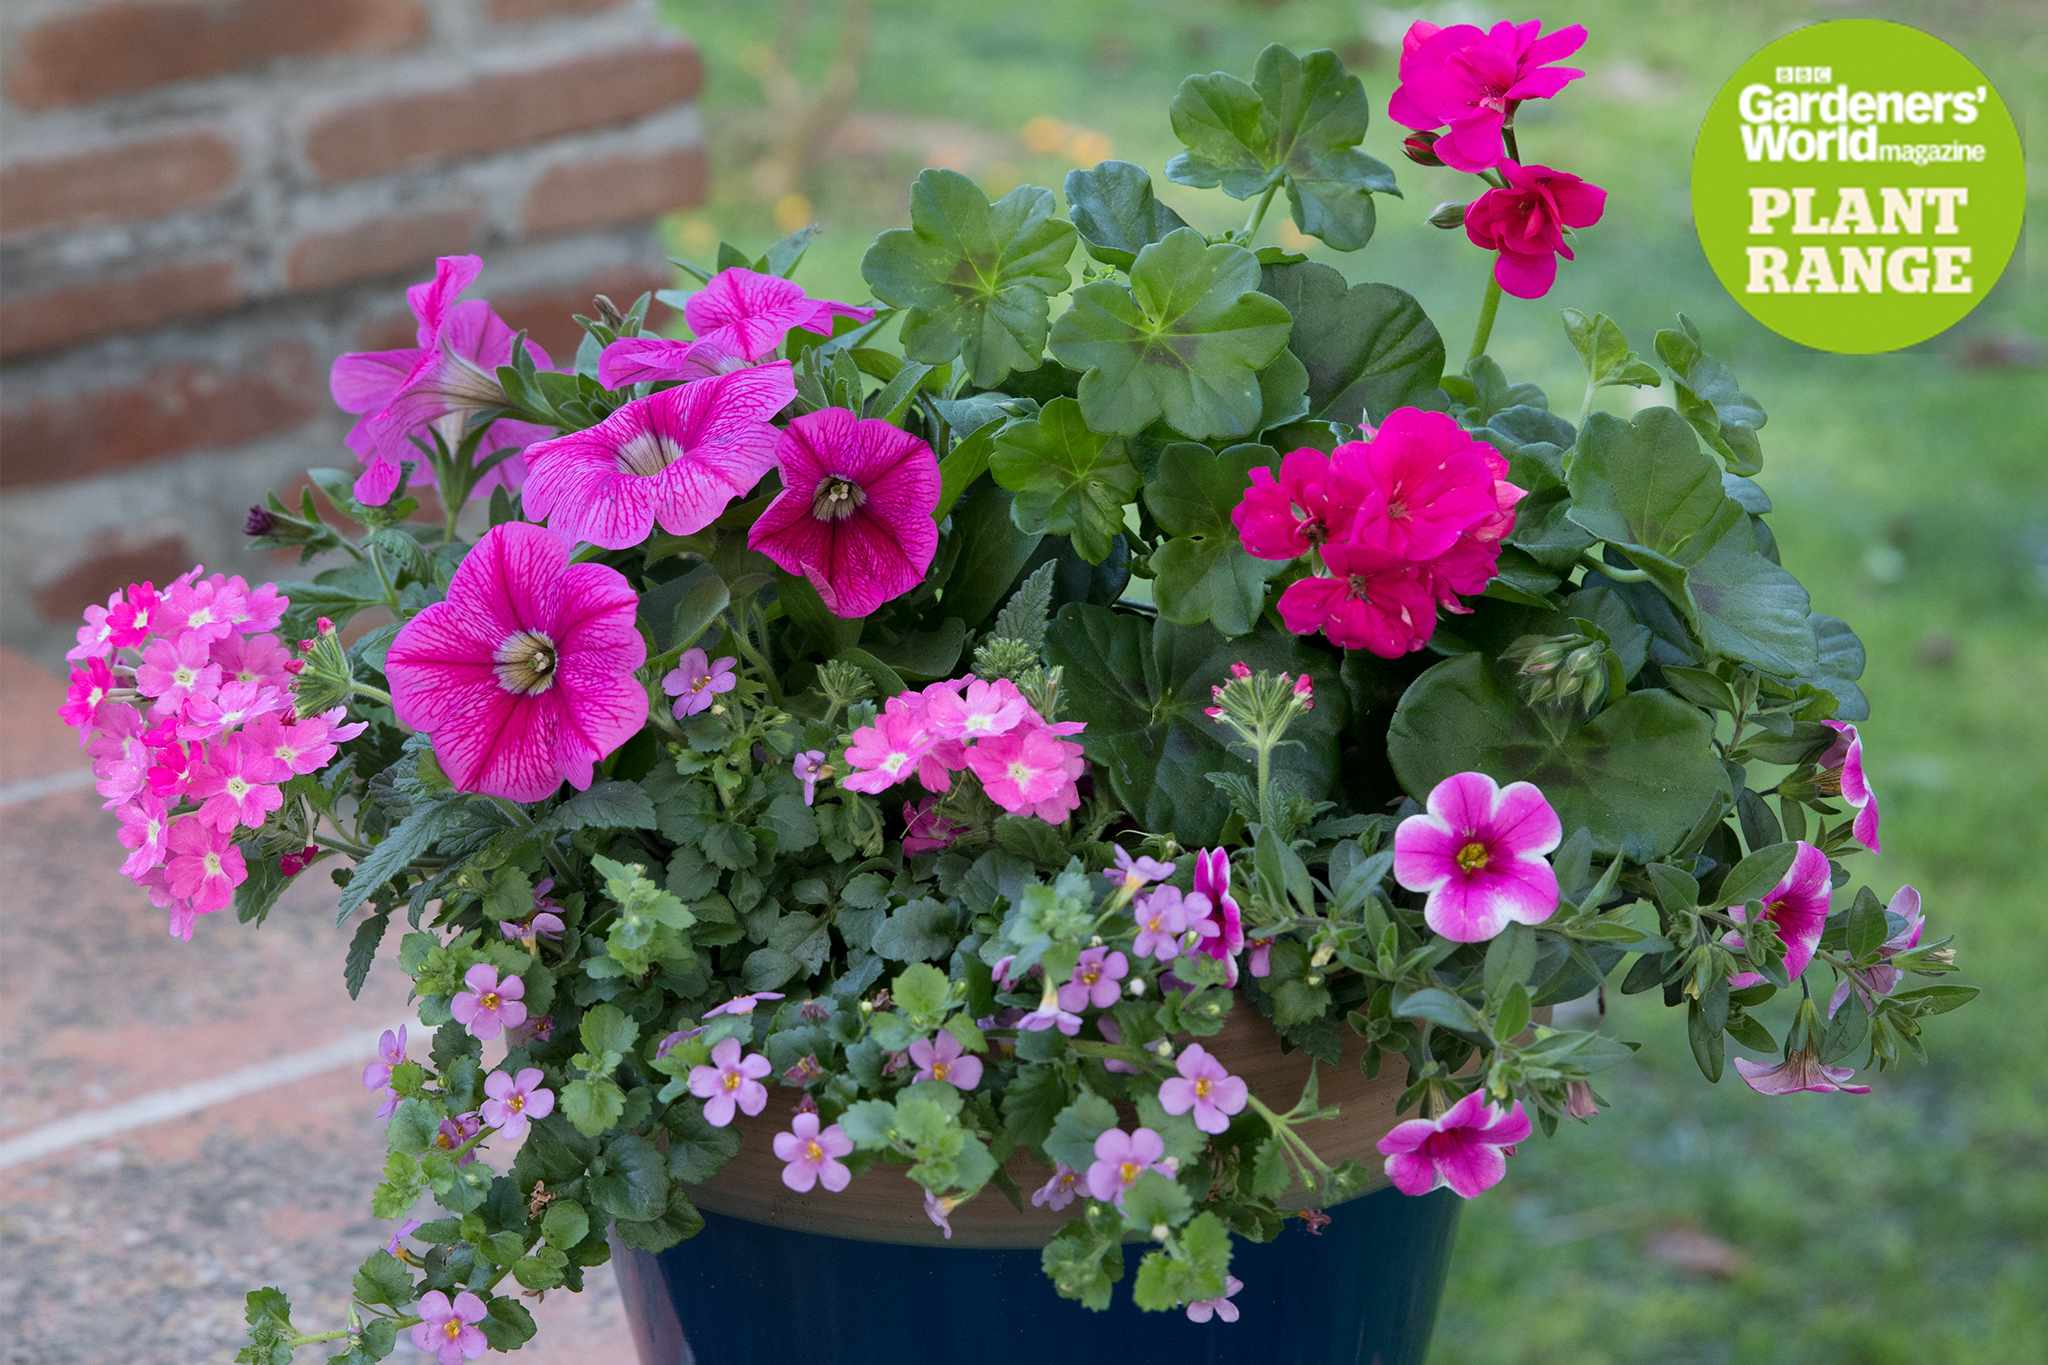 Pink Perfection plant collection